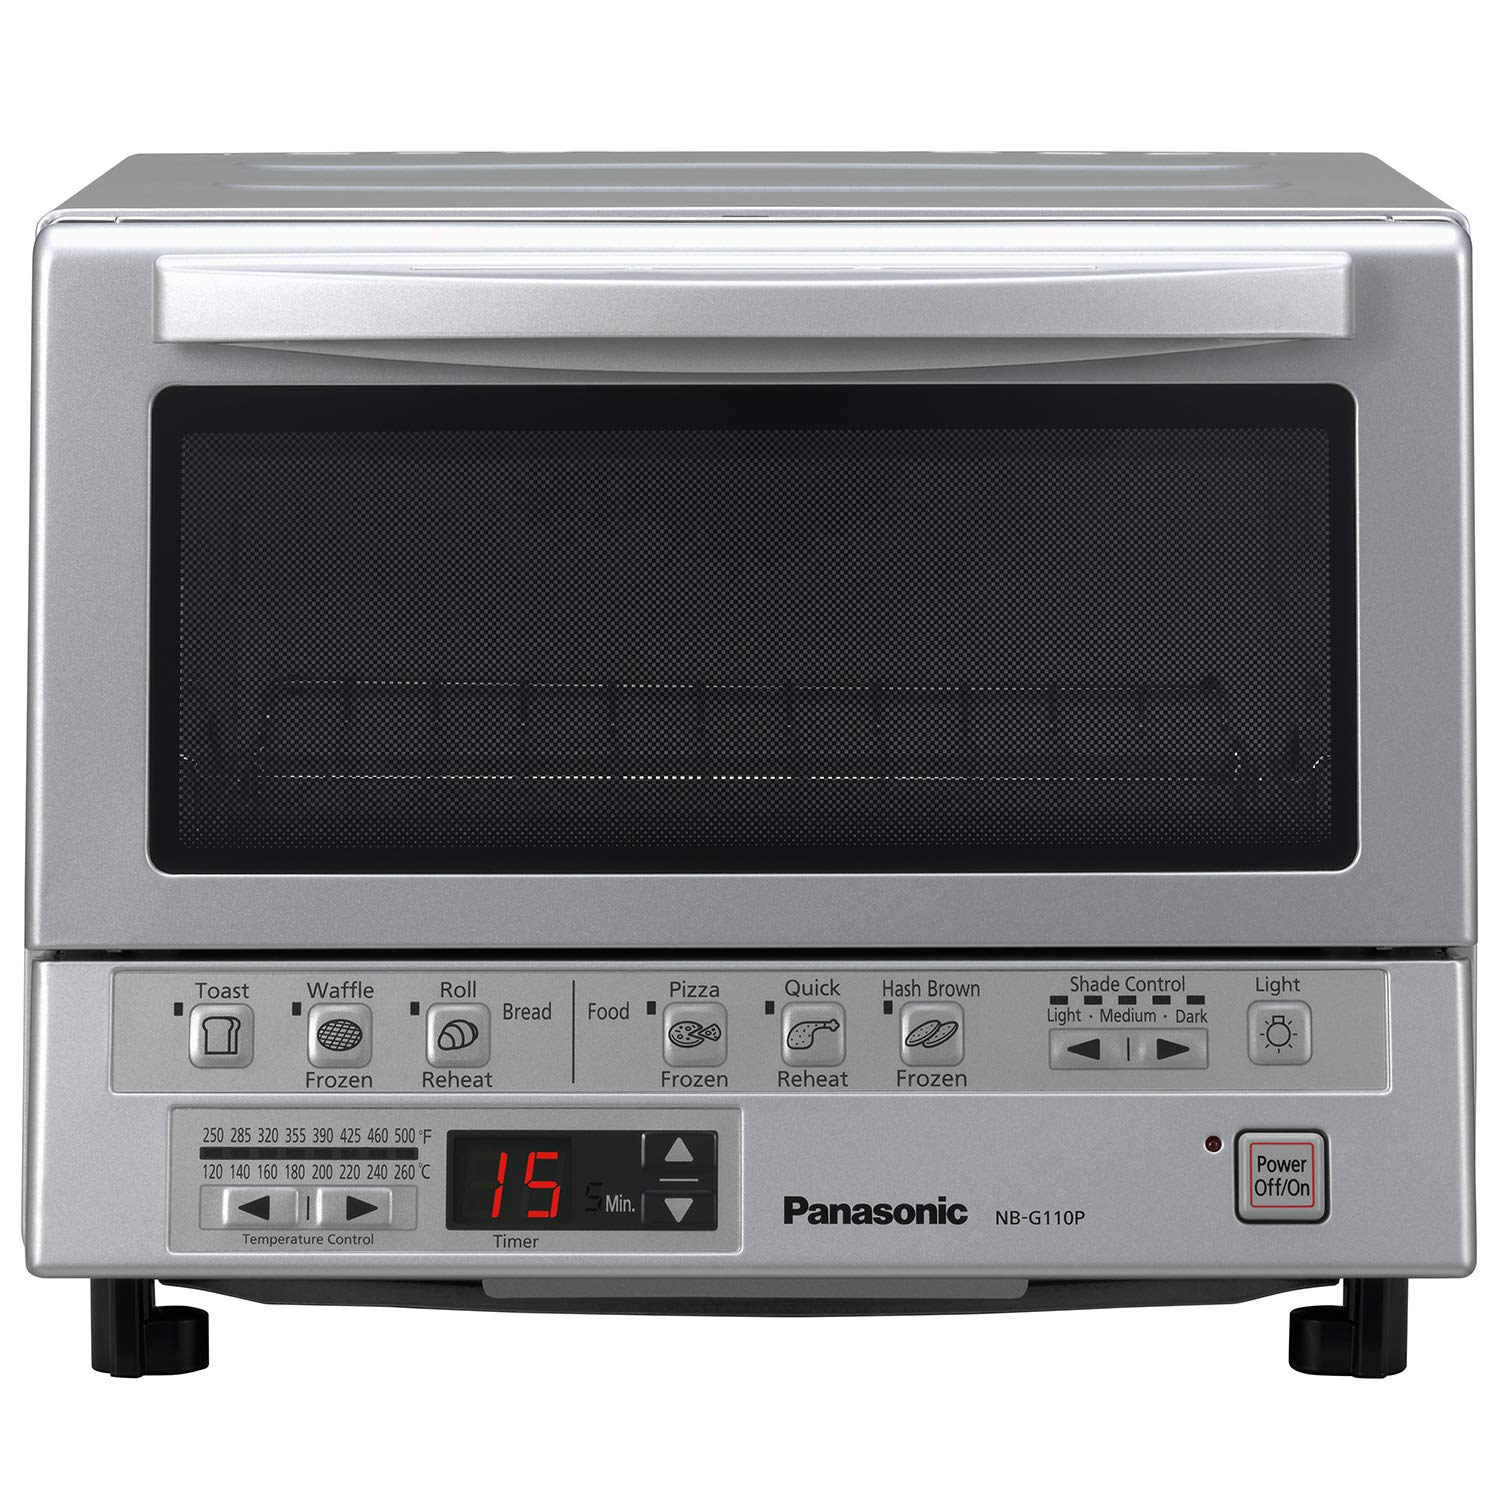 Panasonic NB-G110P Toaster Oven FlashXpress with Double Infrared Heating and Removable 9-Inch Inner Baking Tray, Silver, 1300W by Panasonic